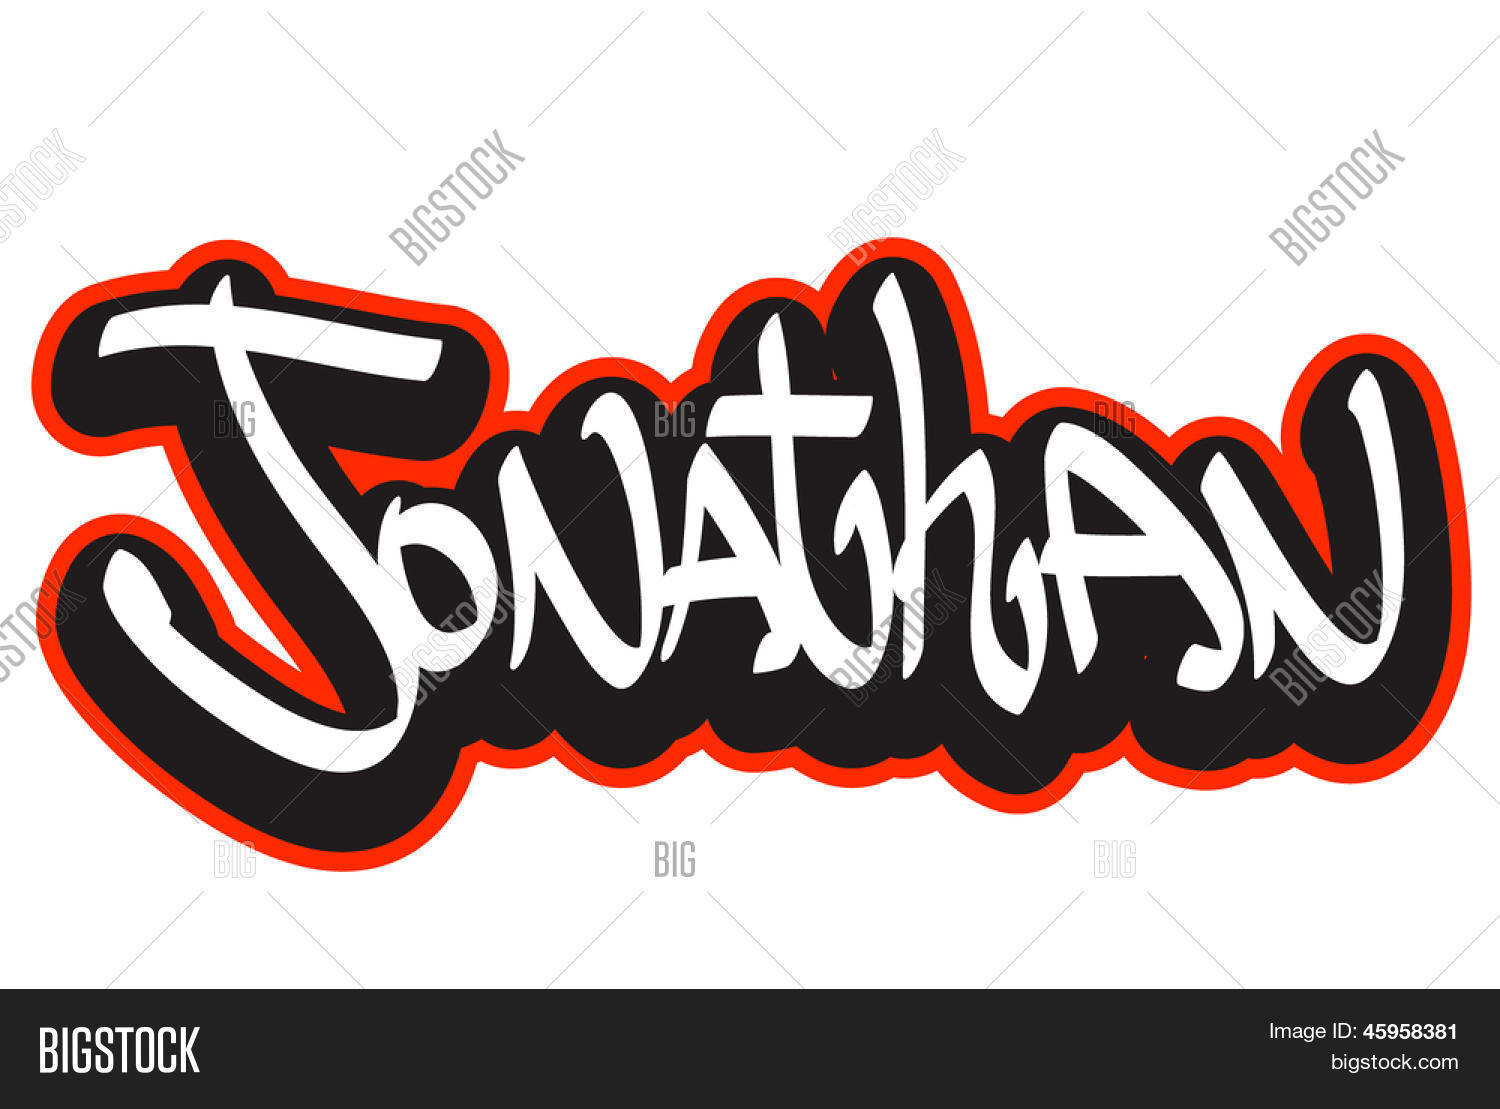 Jonathan graffiti vector photo free trial bigstock jonathan graffiti font style name hip hop design template for t shirt thecheapjerseys Image collections